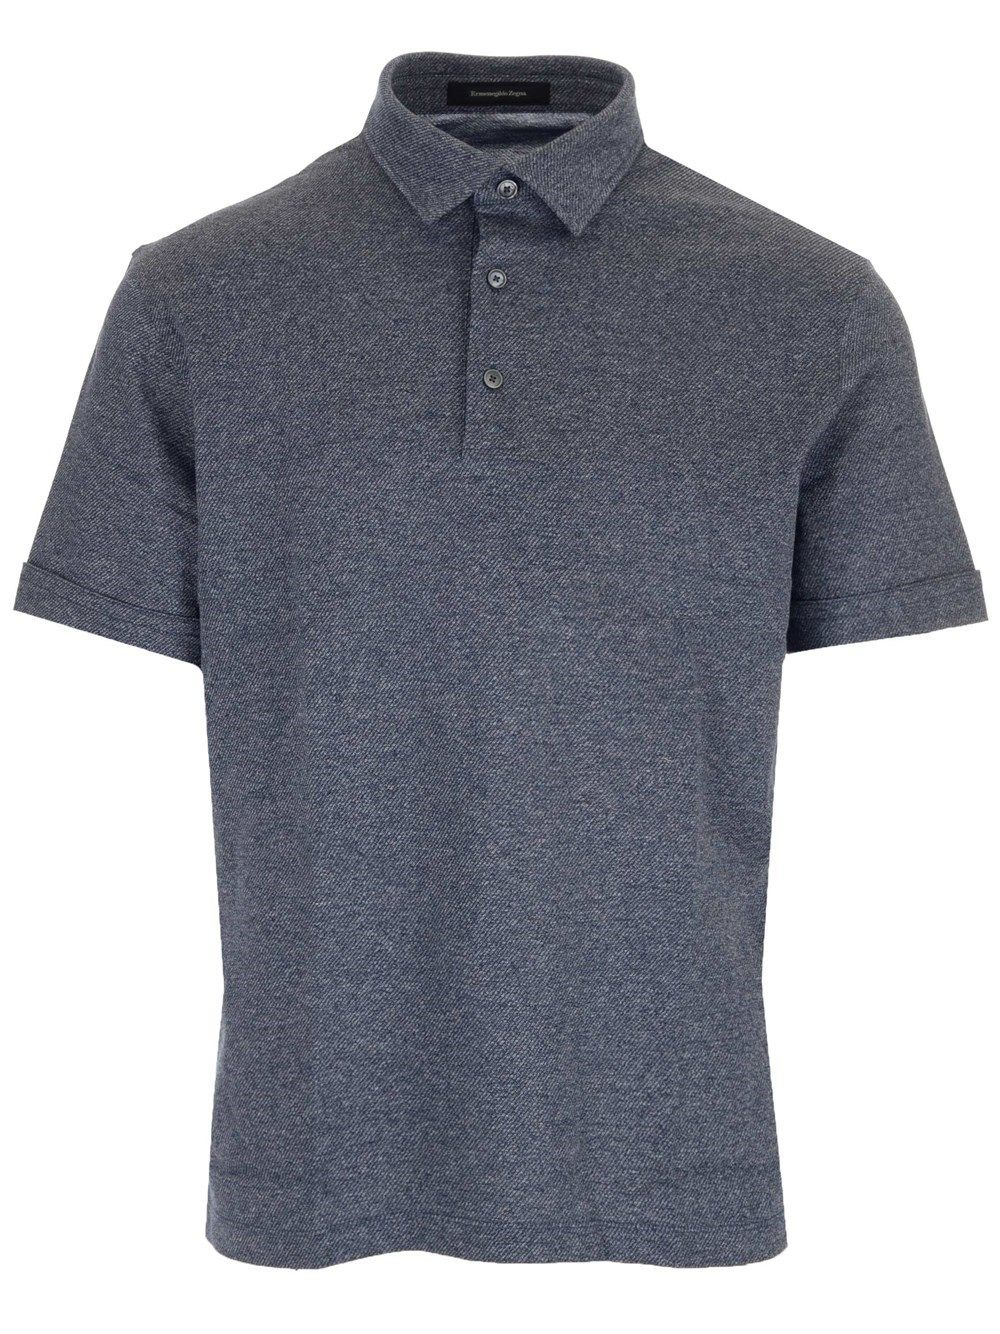 Ermenegildo Zegna ERMENEGILDO ZEGNA MEN'S UW344723101 BLUE OTHER MATERIALS POLO SHIRT